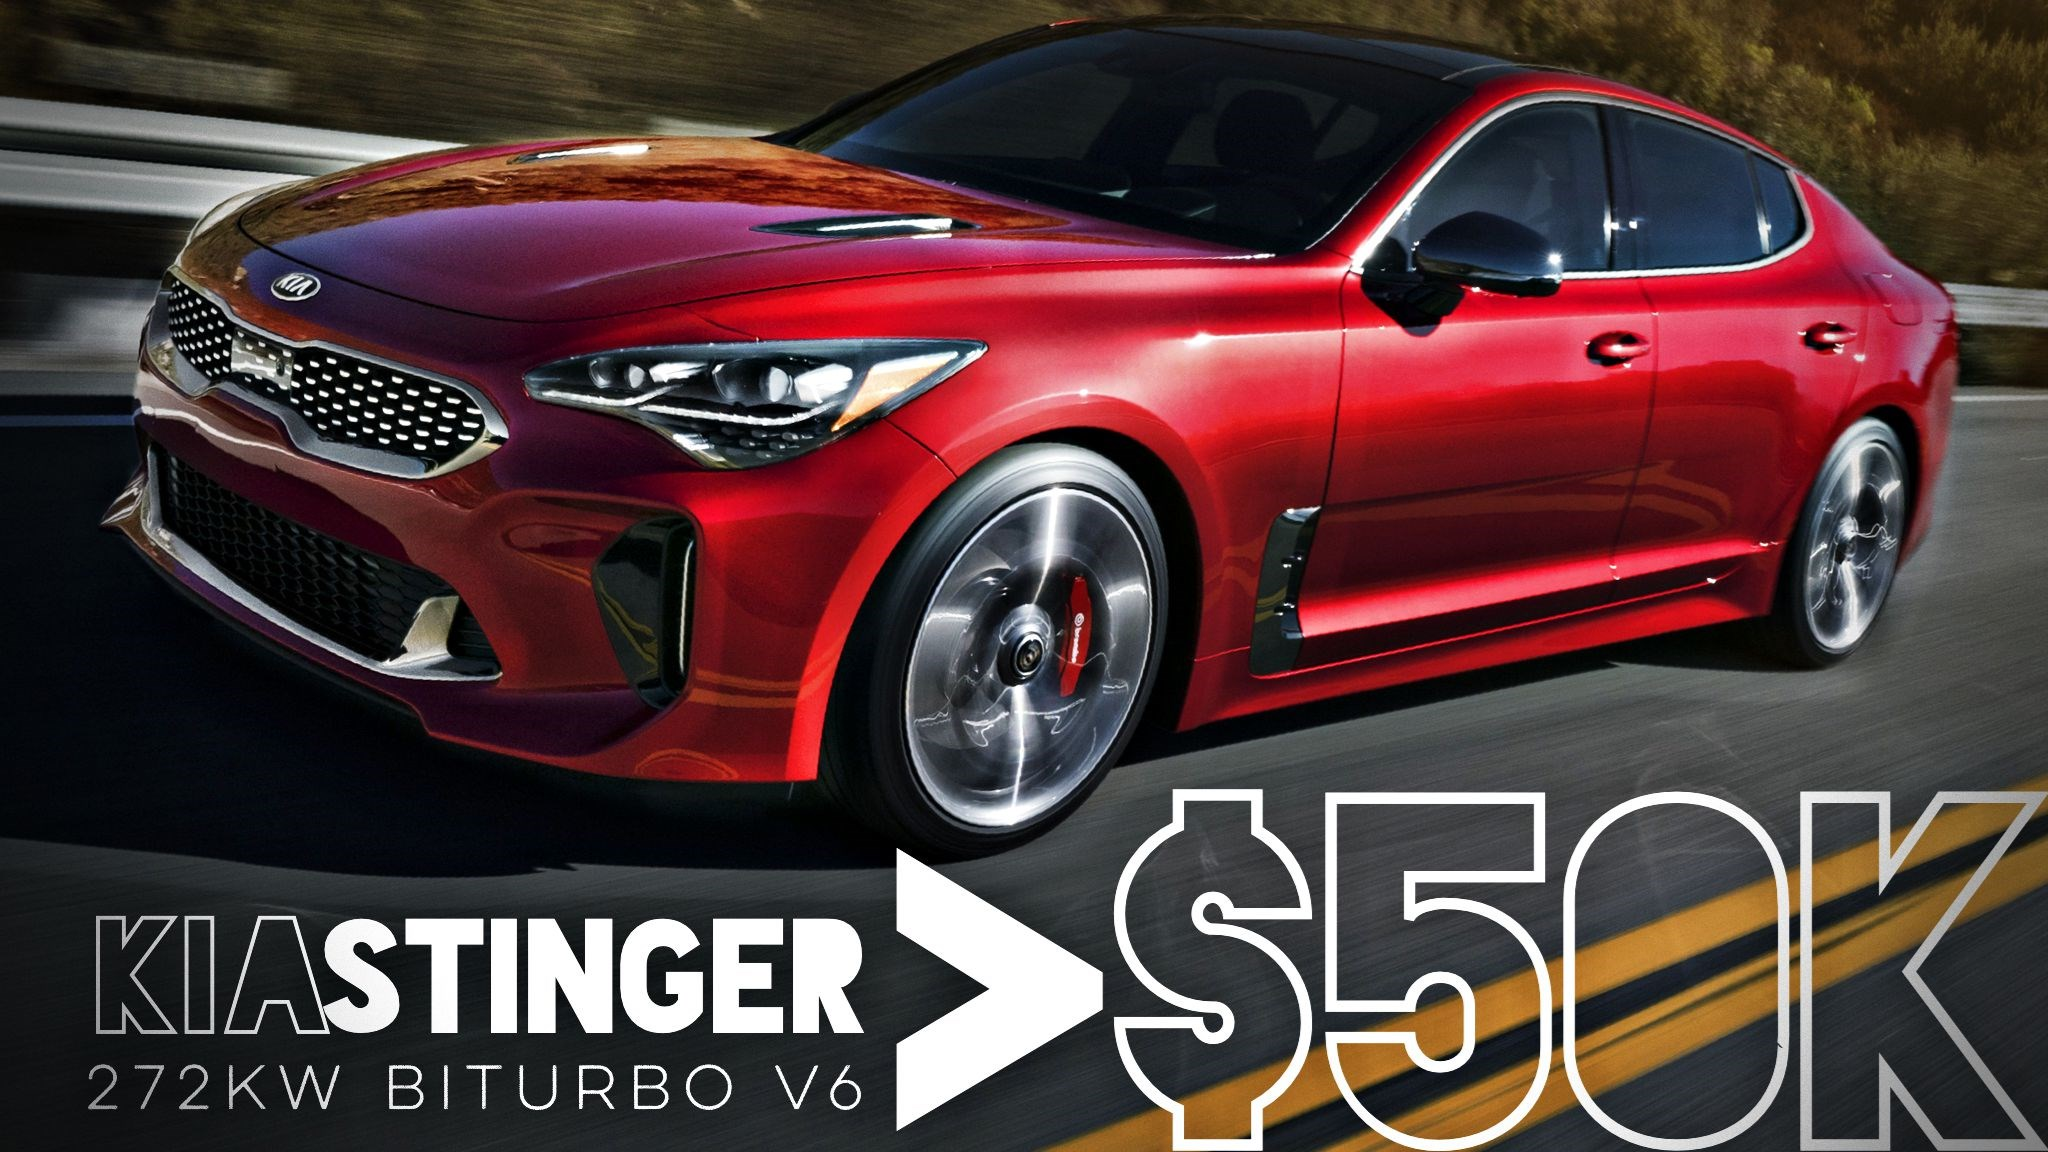 2018 Kia Stinger V6 Priced From $48,990